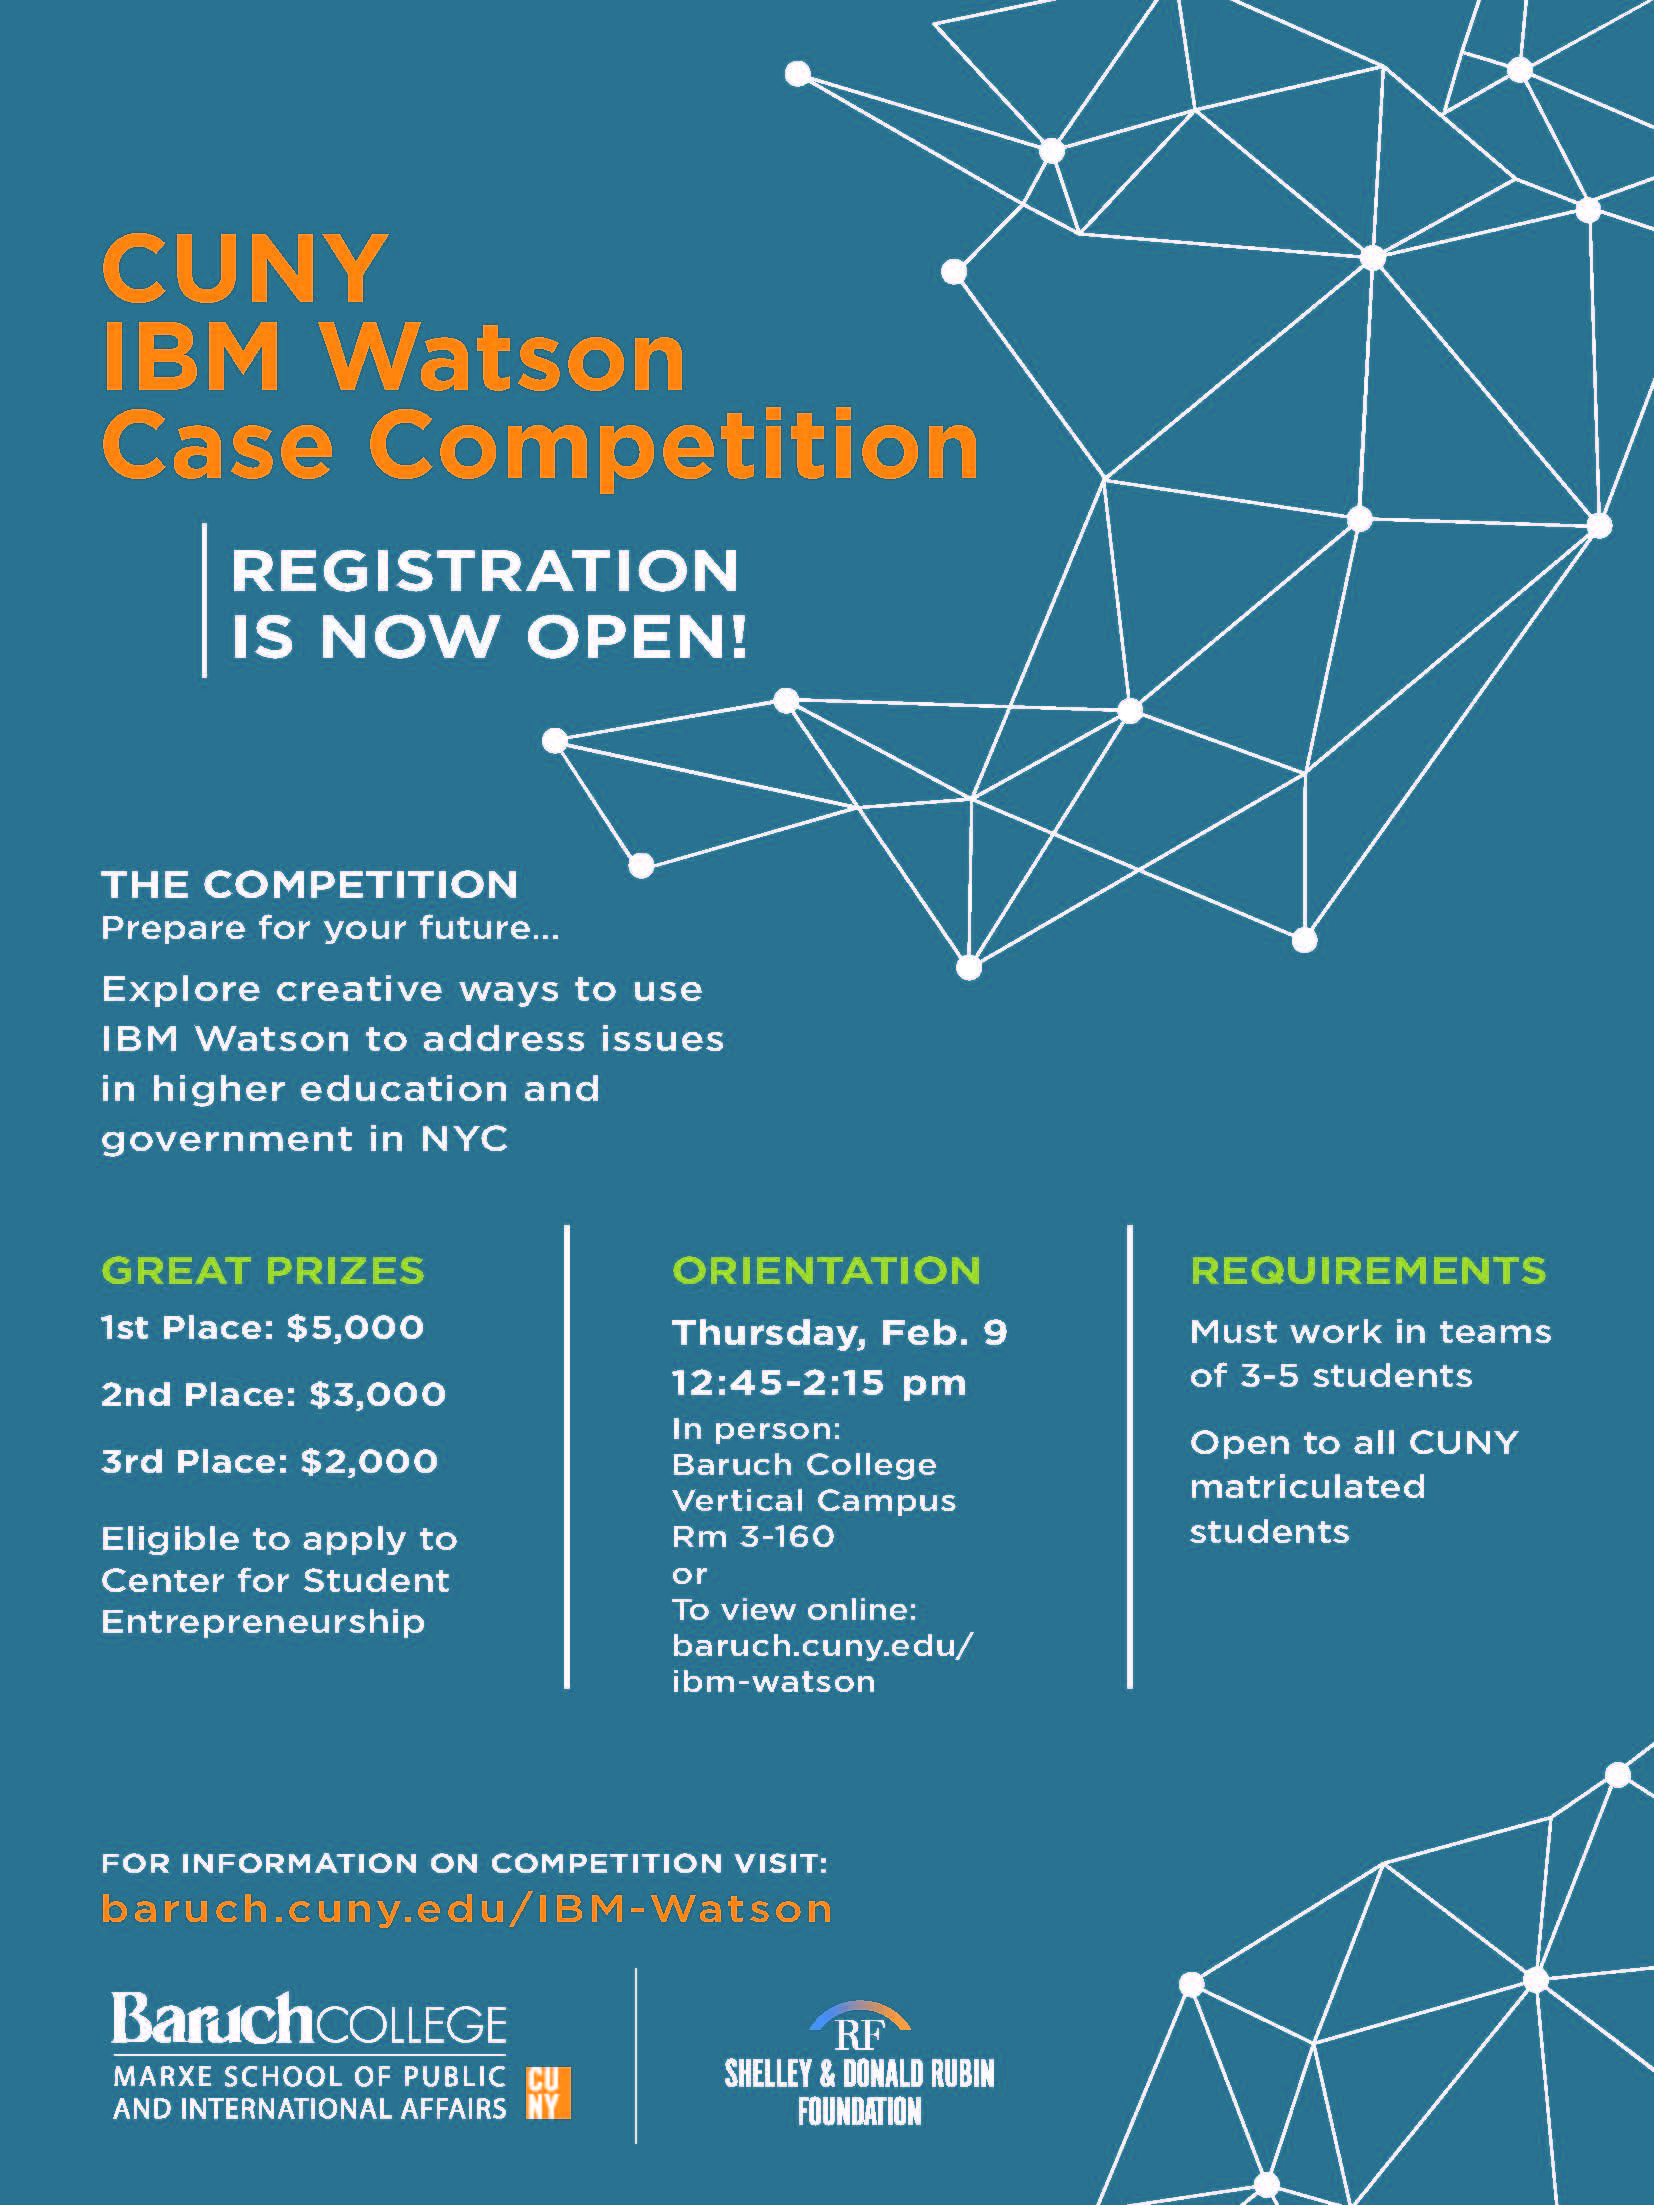 CUNY-IBM Watson Competition